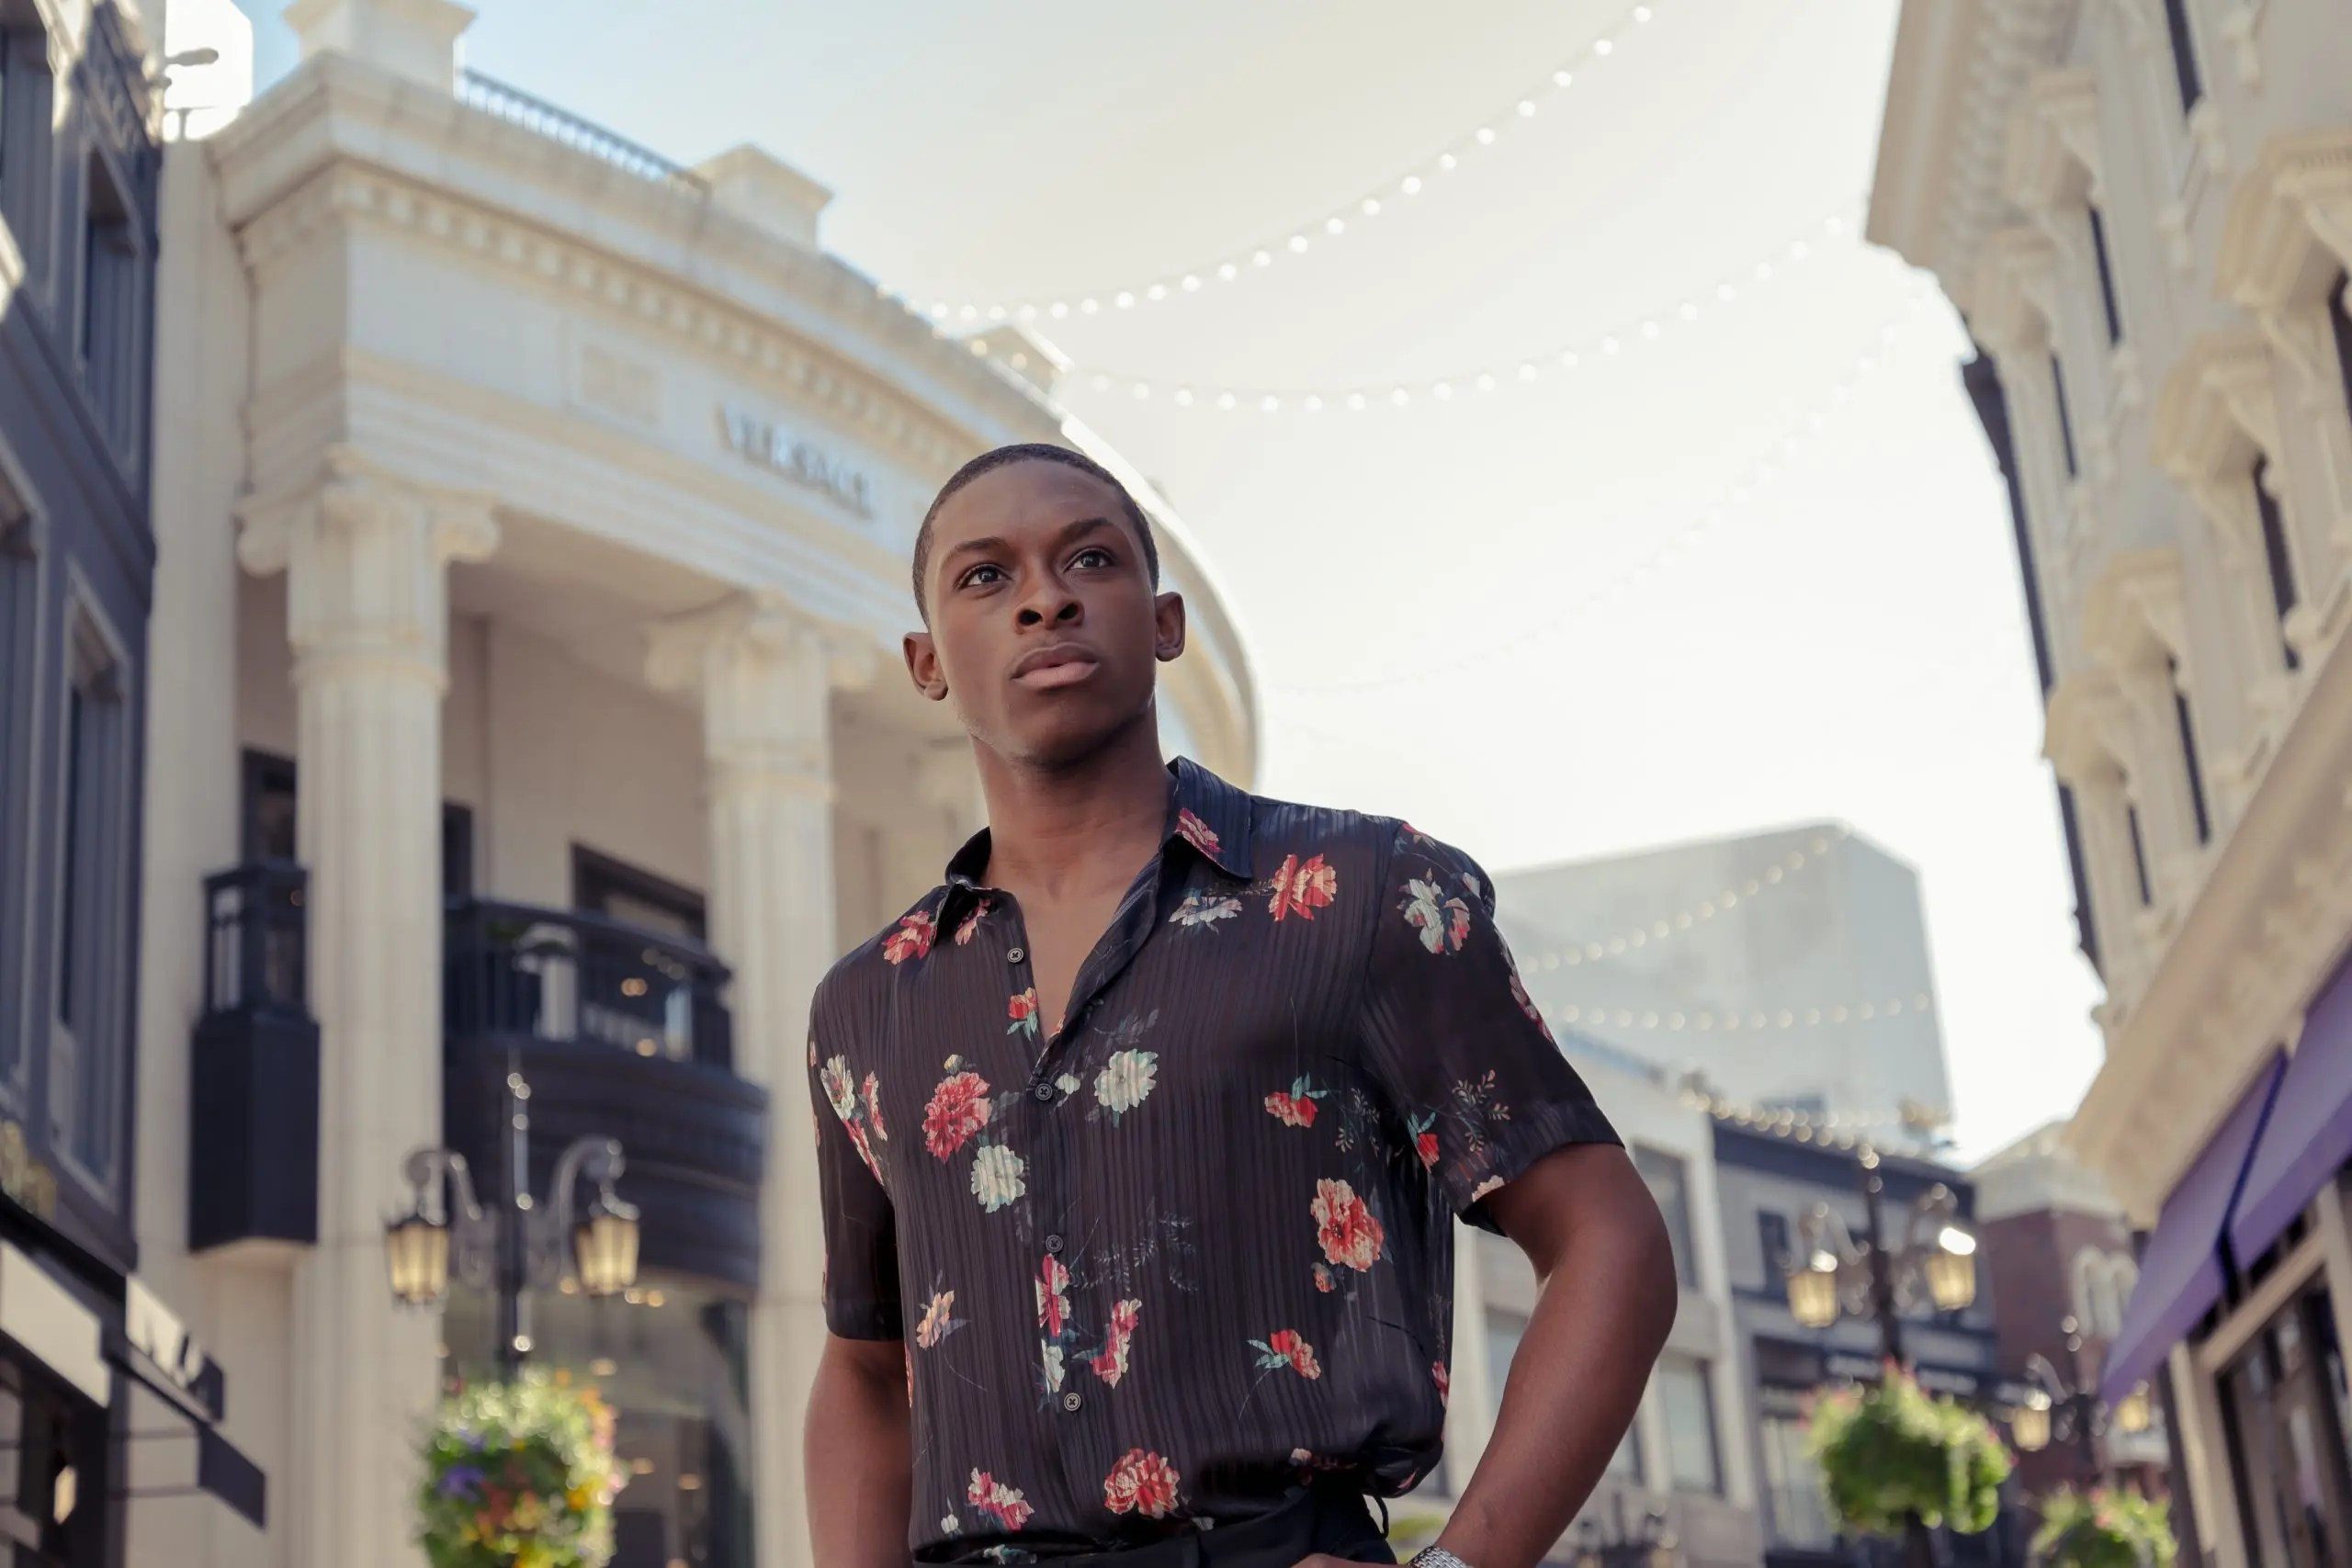 Black male model posing in front of the Versace building in Rodeo Drive in Beverly Hills, California wearing a black floral button-down shirt.